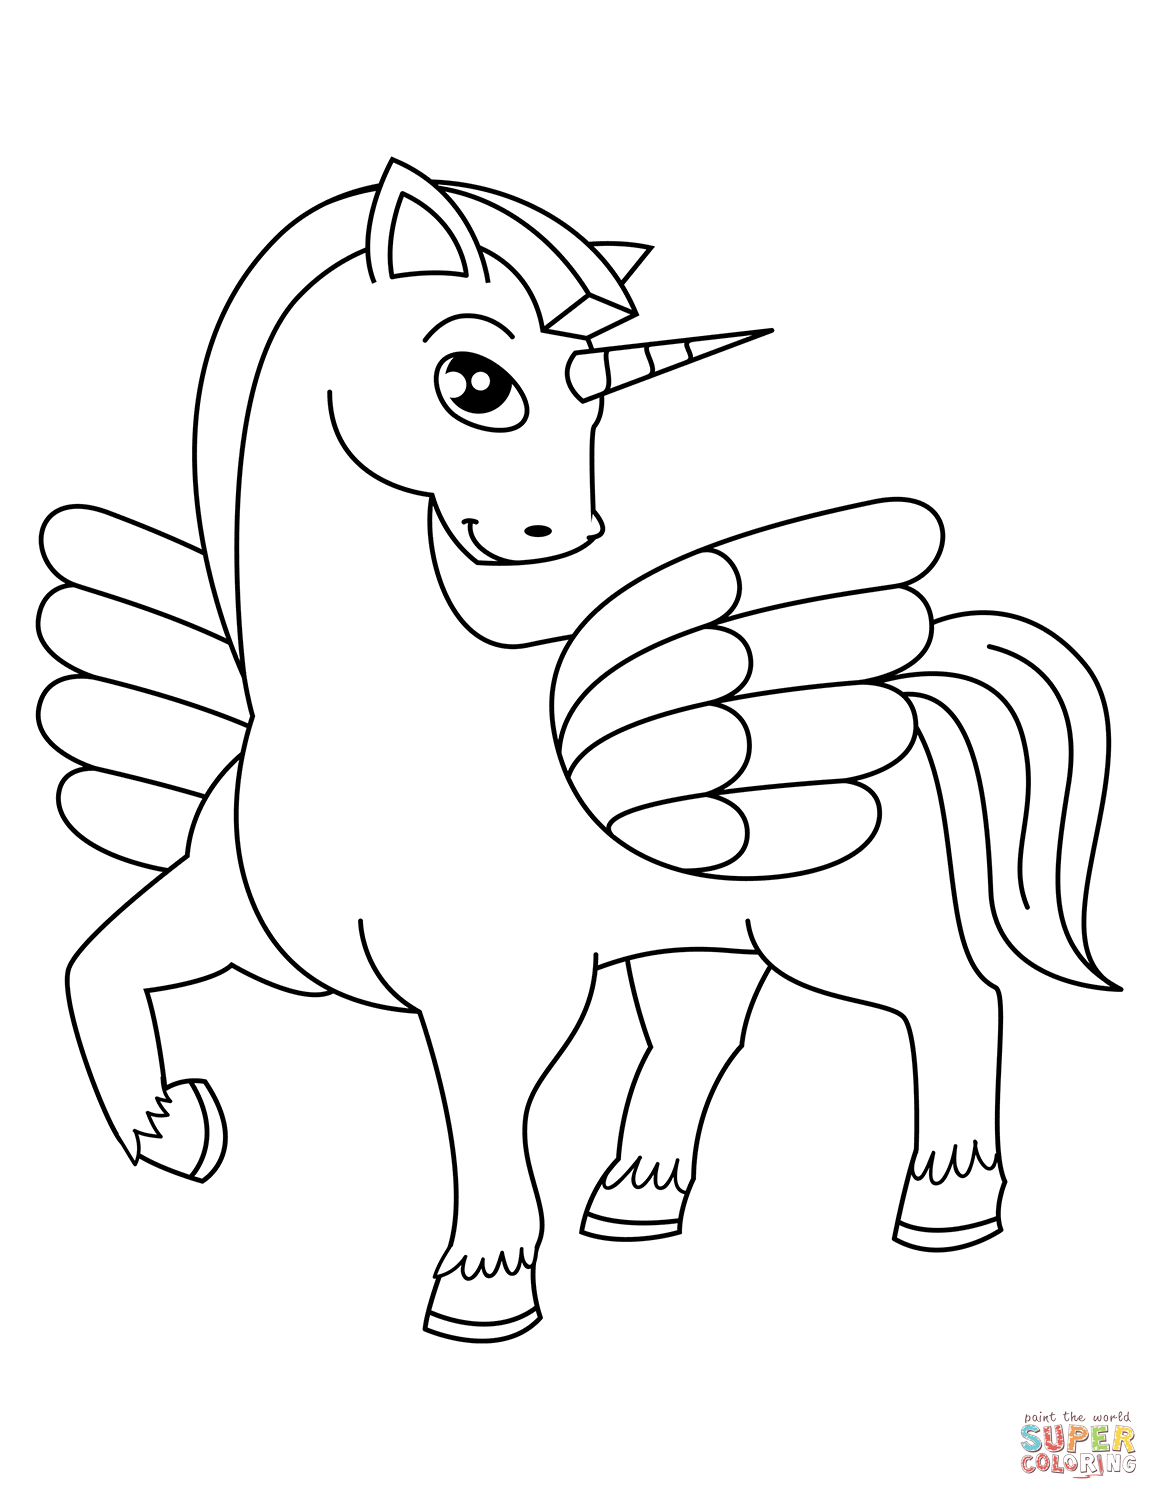 unicorn pictures for coloring unicorn coloring page for kids stock illustration coloring pictures unicorn for